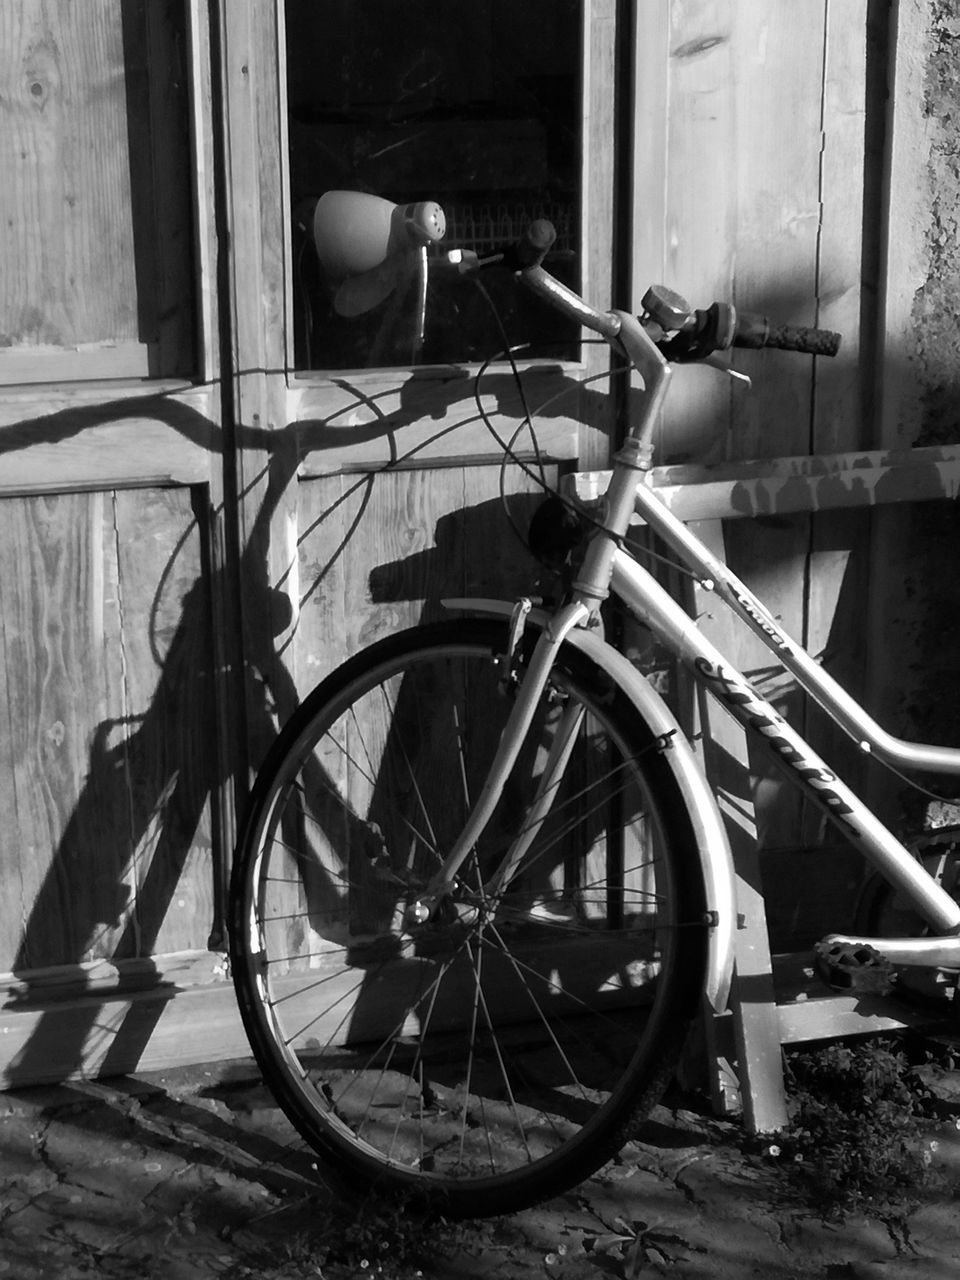 BICYCLE PARKED IN OLD BUILDING